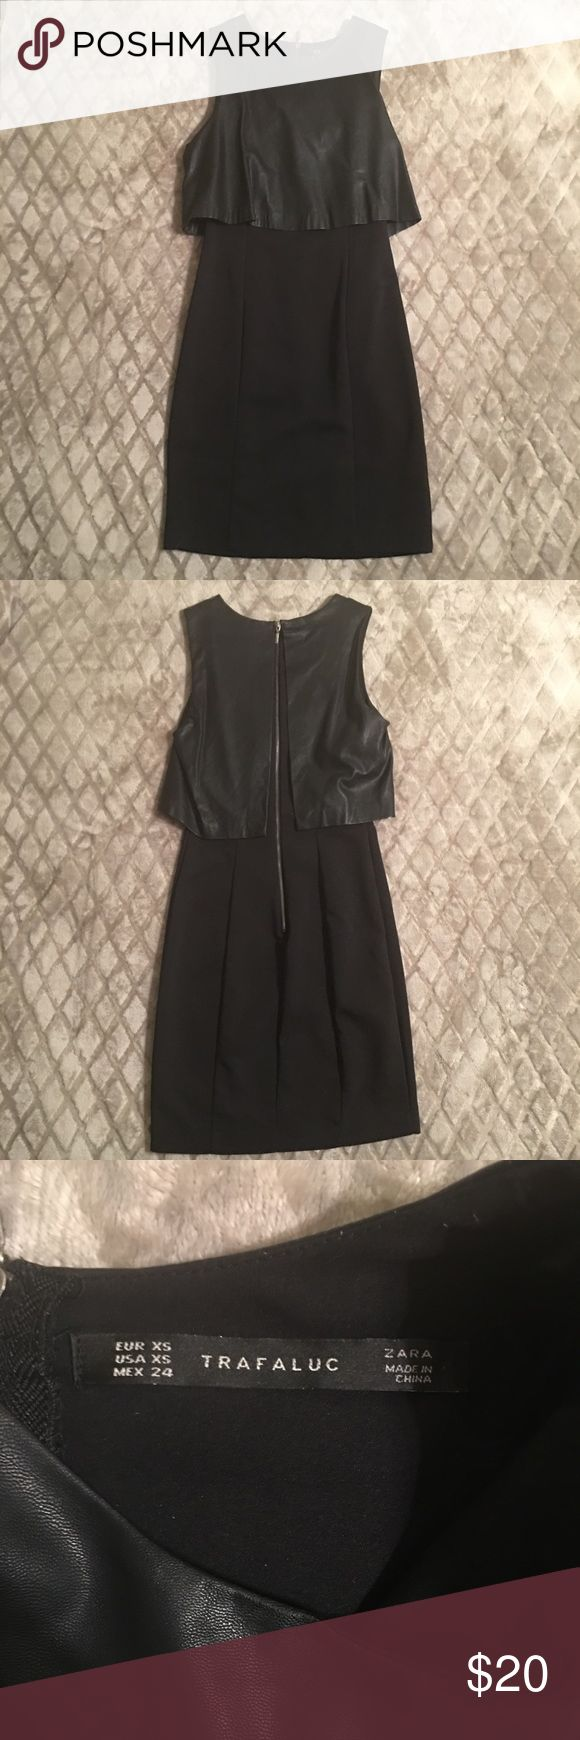 "Zara little black dress Cute form fitting black dress with faux leather top. My phone autocorrected ""leather"" to ""meat."" Chill, Lady Gaga phone. No meat dress here. Zara Dresses"